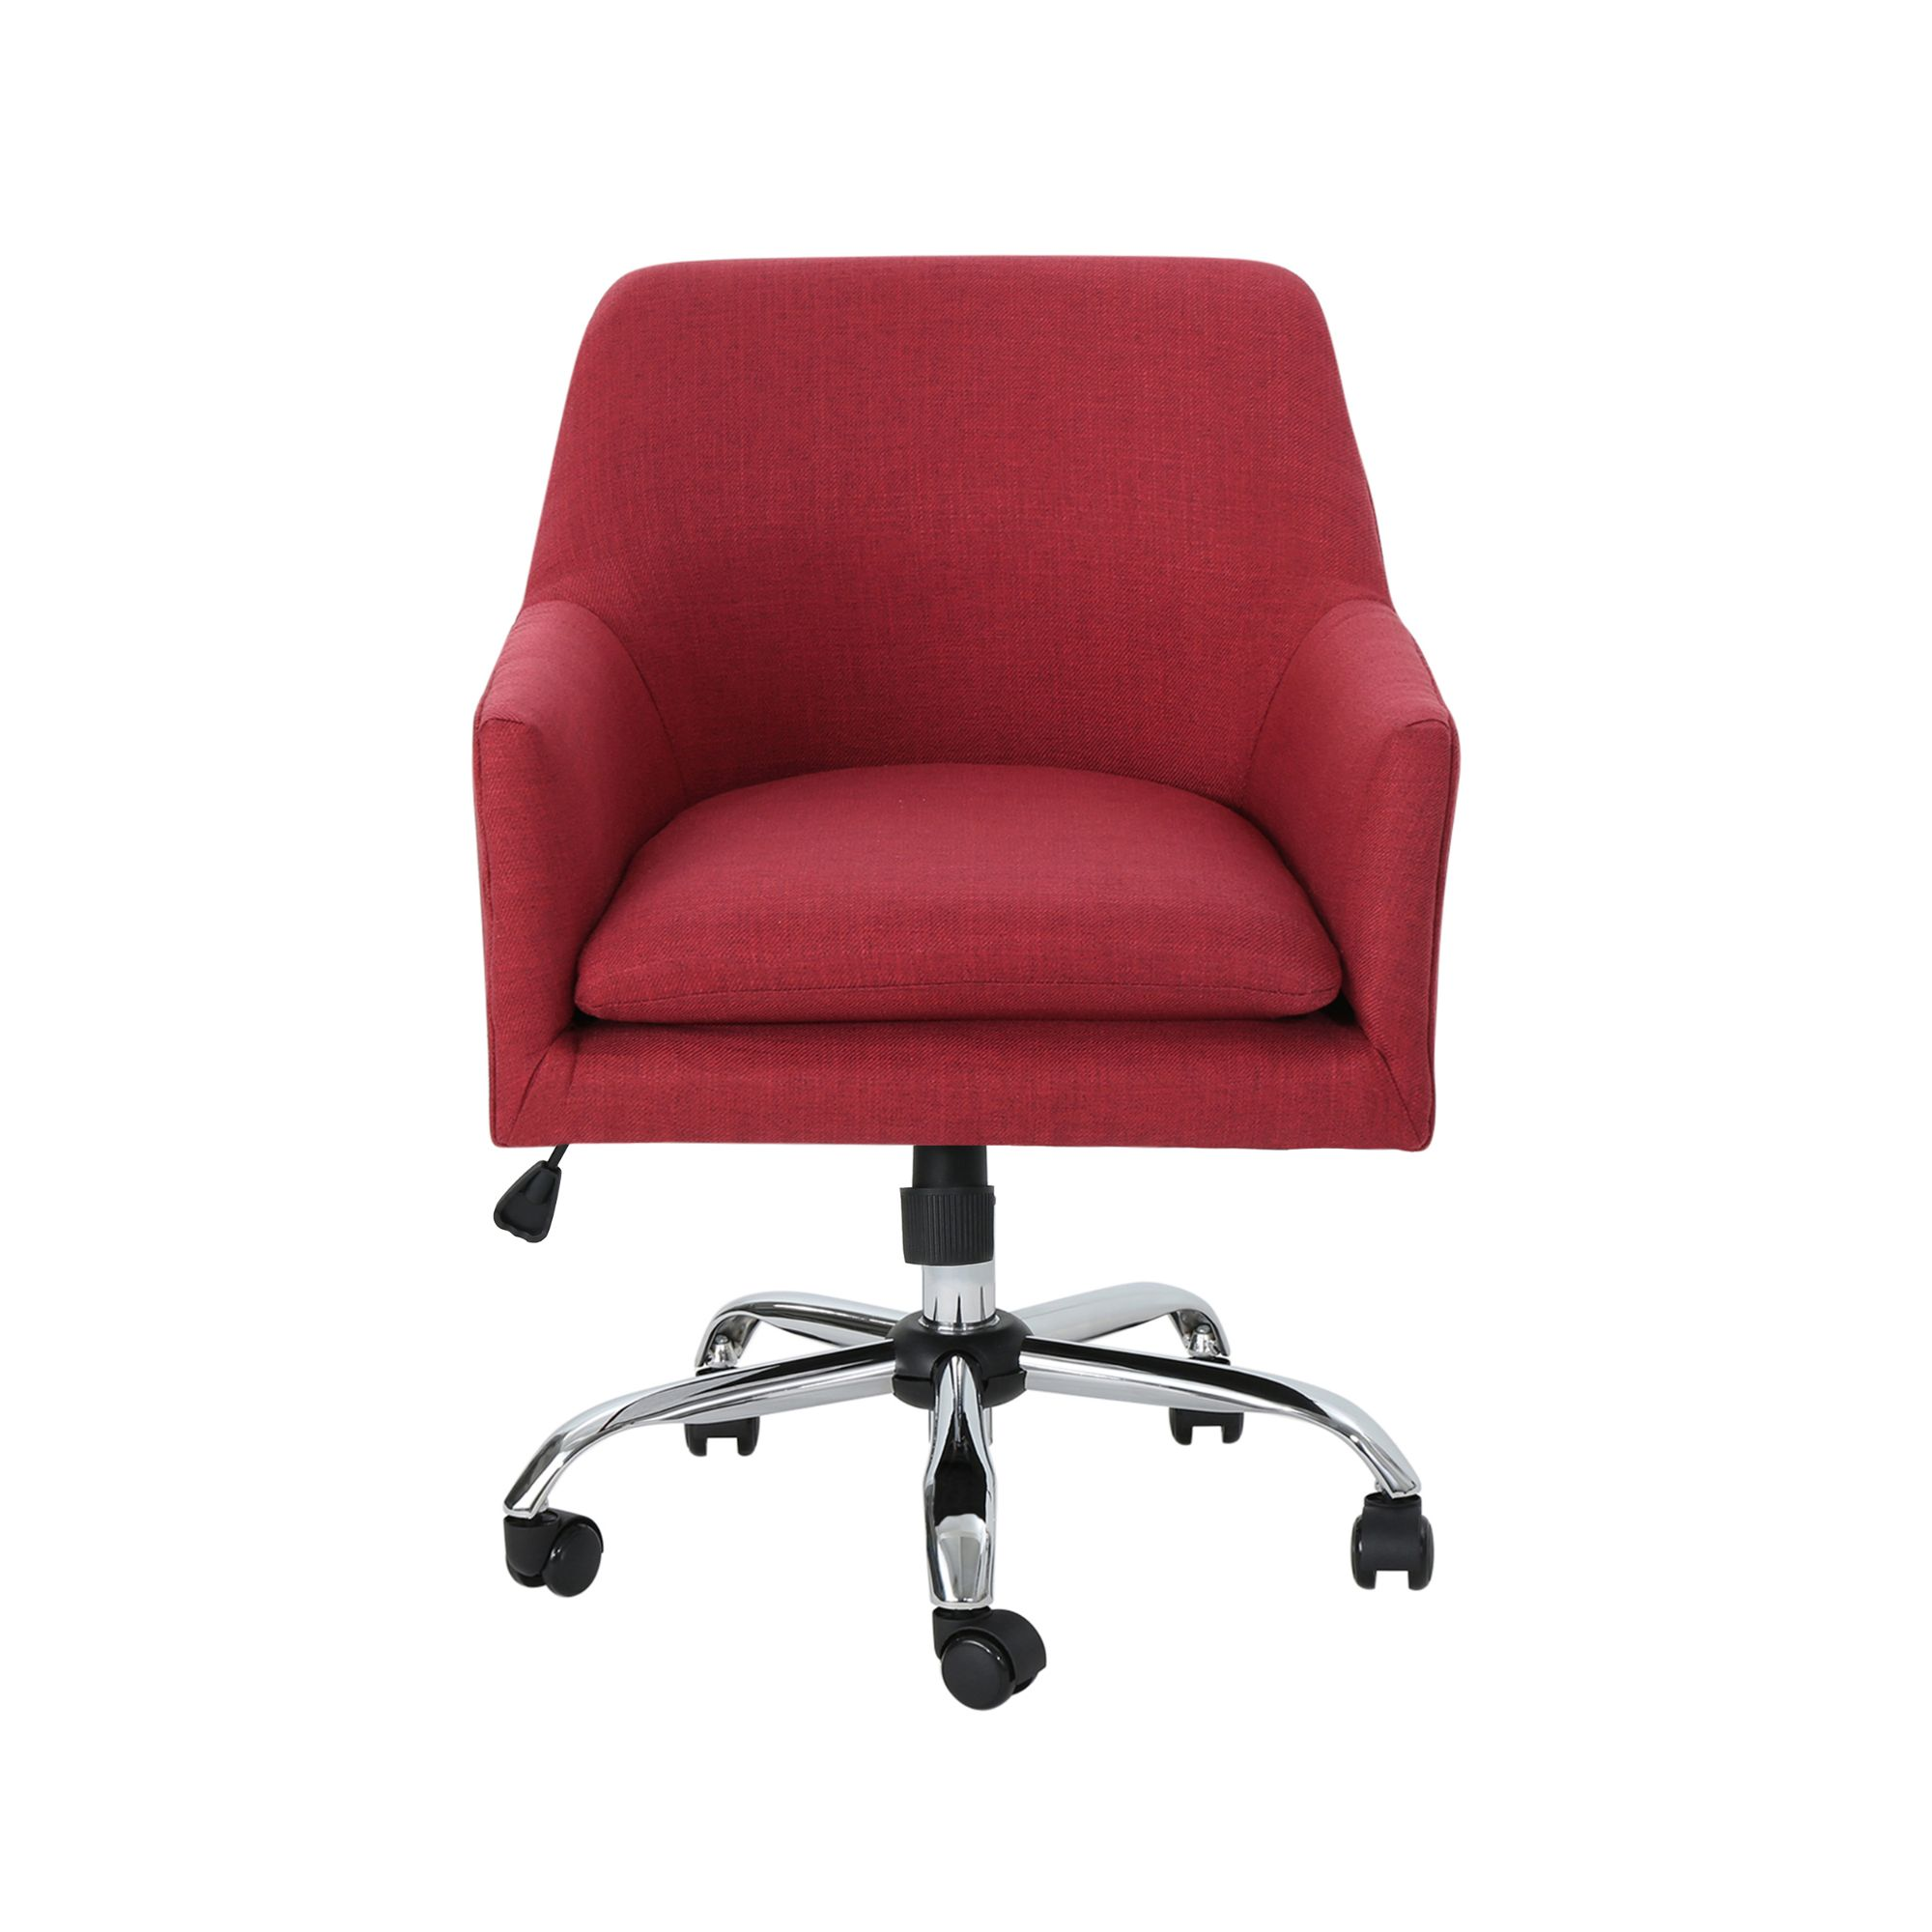 32 5 Red And Silver Contemporary Handcrafted Home Office Chair Walmart Com Walmart Com